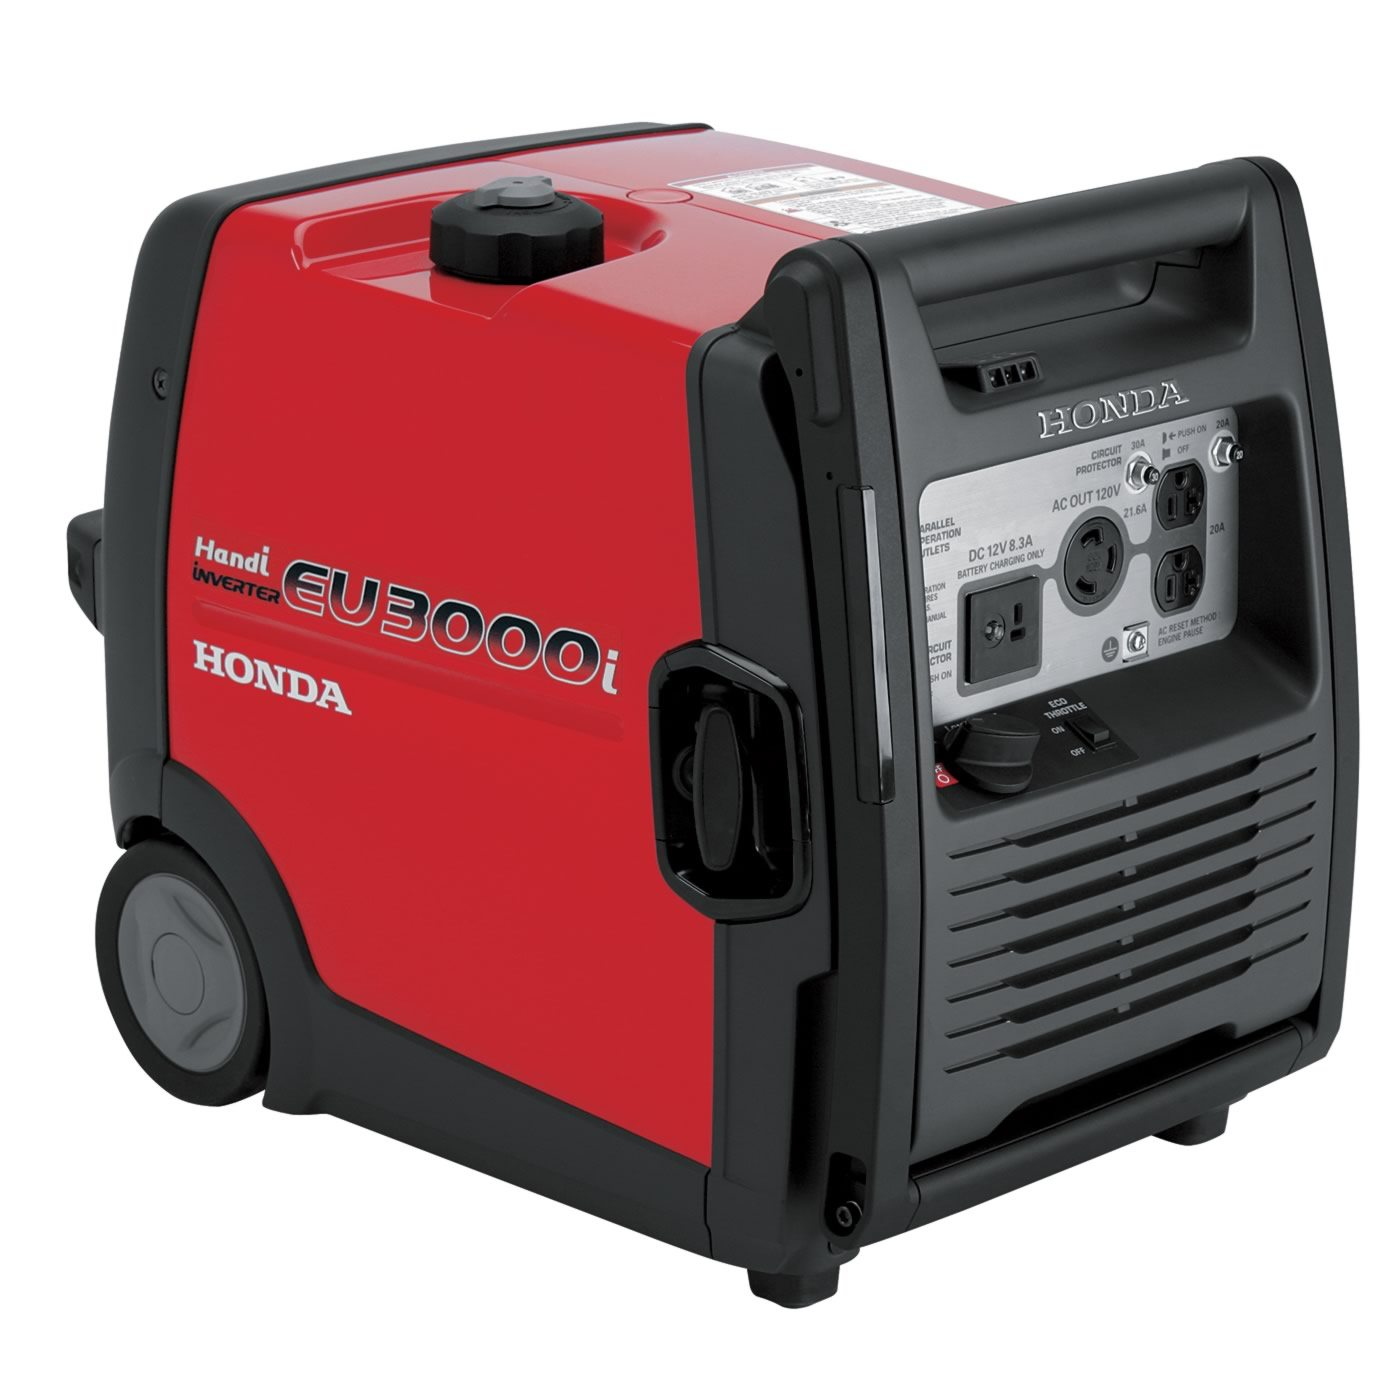 New 2017 Honda Power Equipment EU3000i Handi Generators in